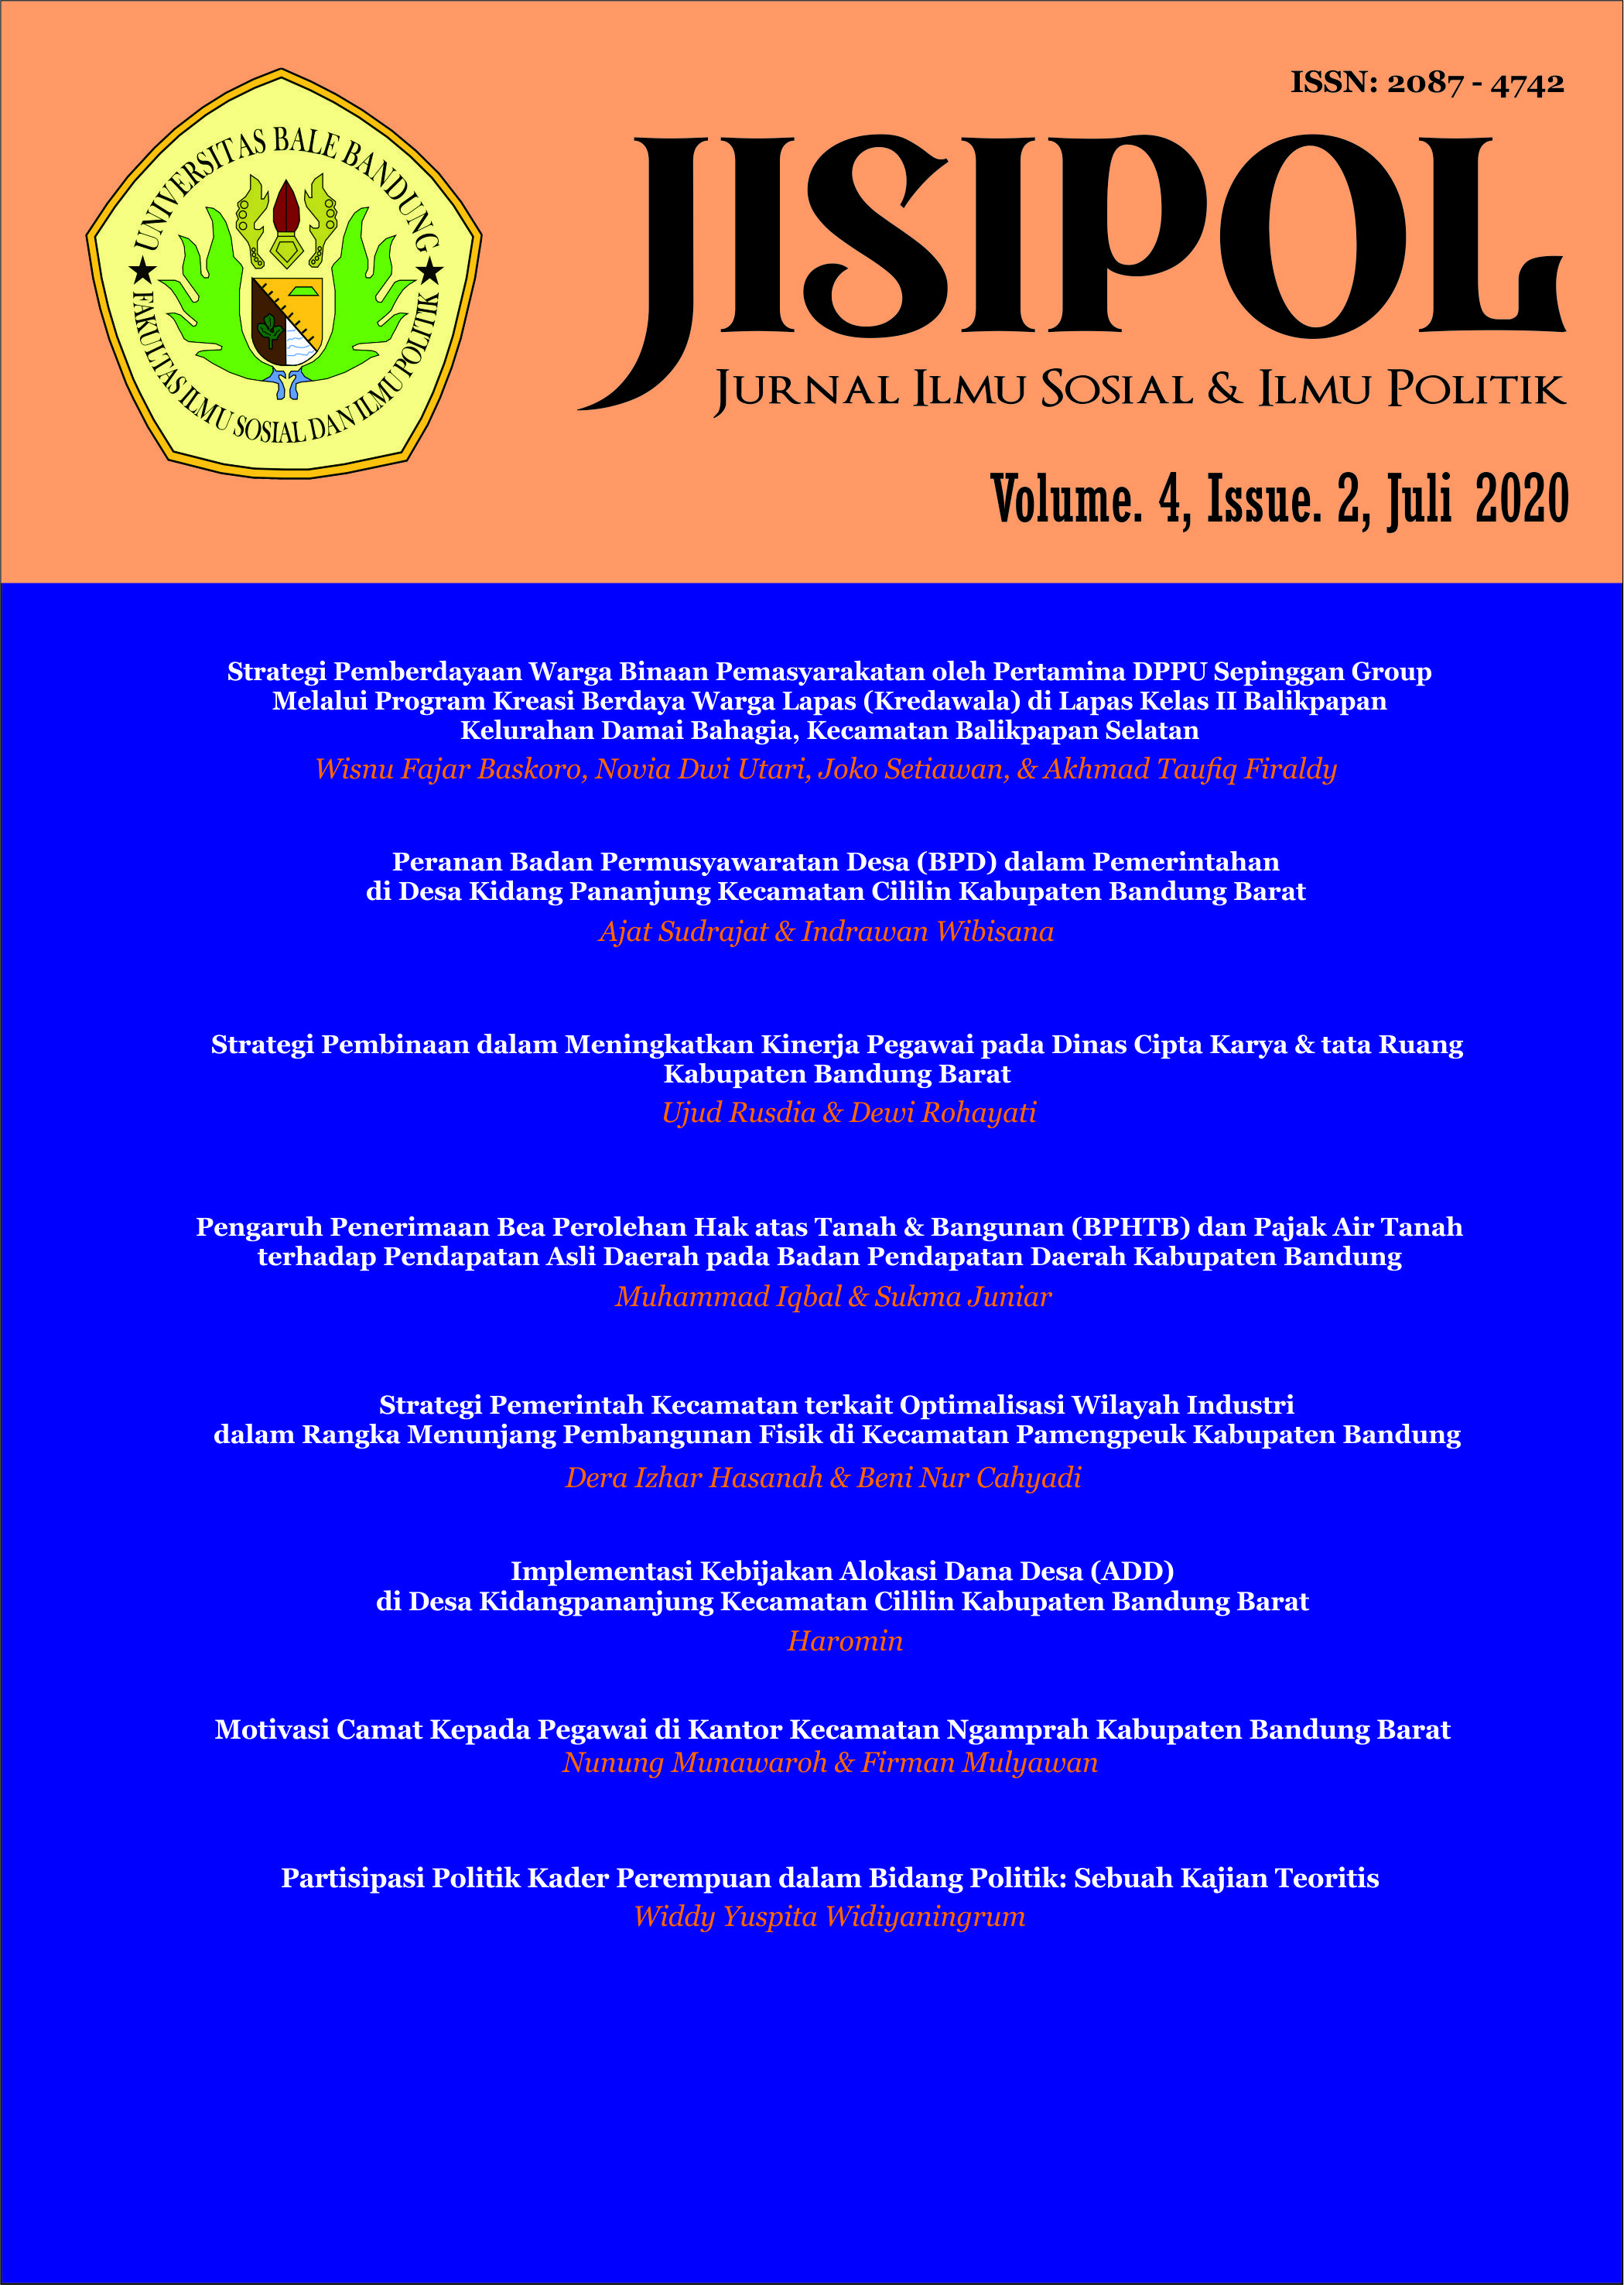 View Vol. 4 No. 2 (2020): JURNAL JISIPOL VOL. 4. NO. 2, JULI 2020